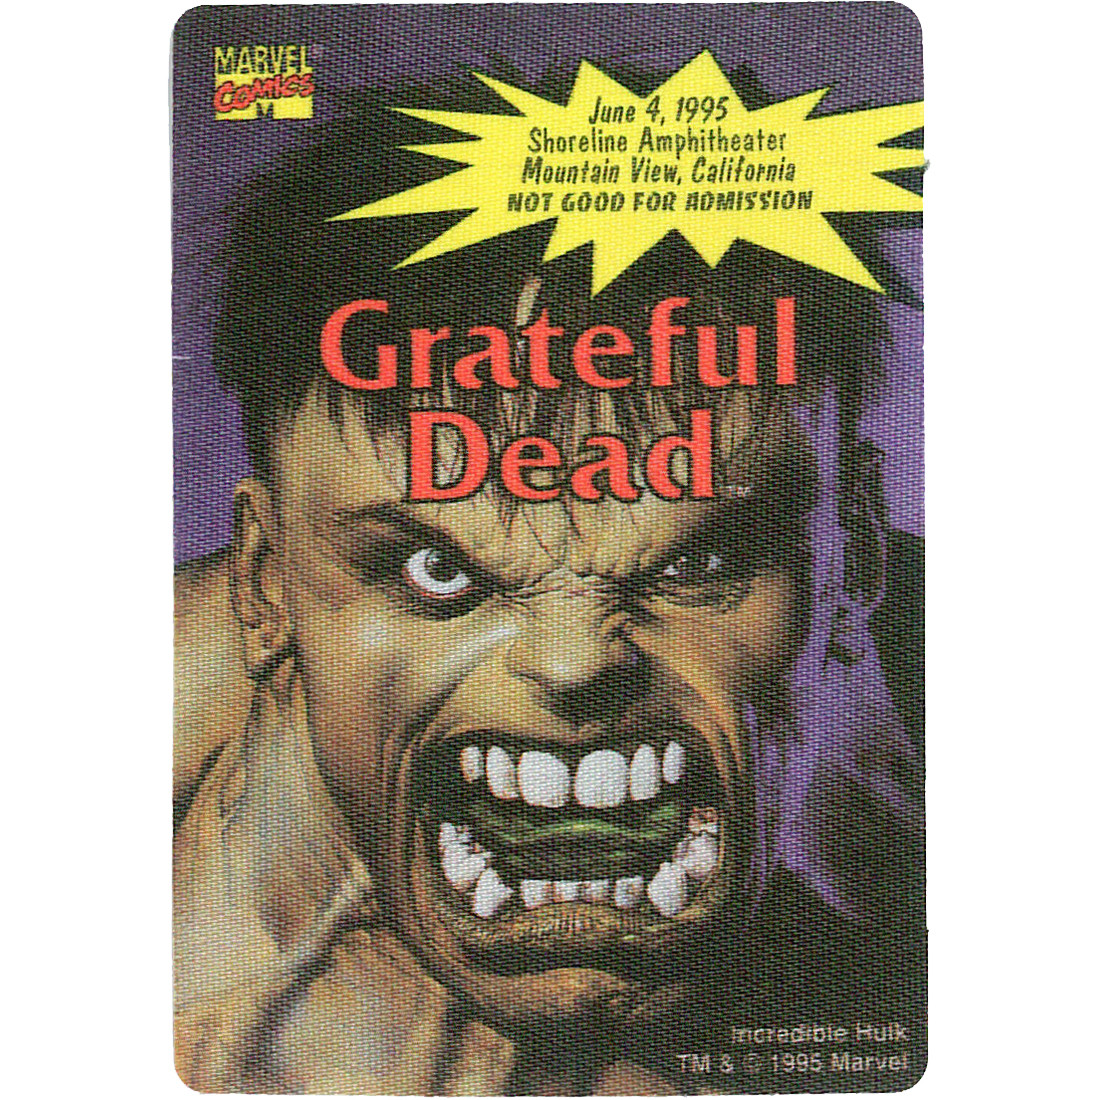 Grateful Dead 1995 06-04 Backstage Pass